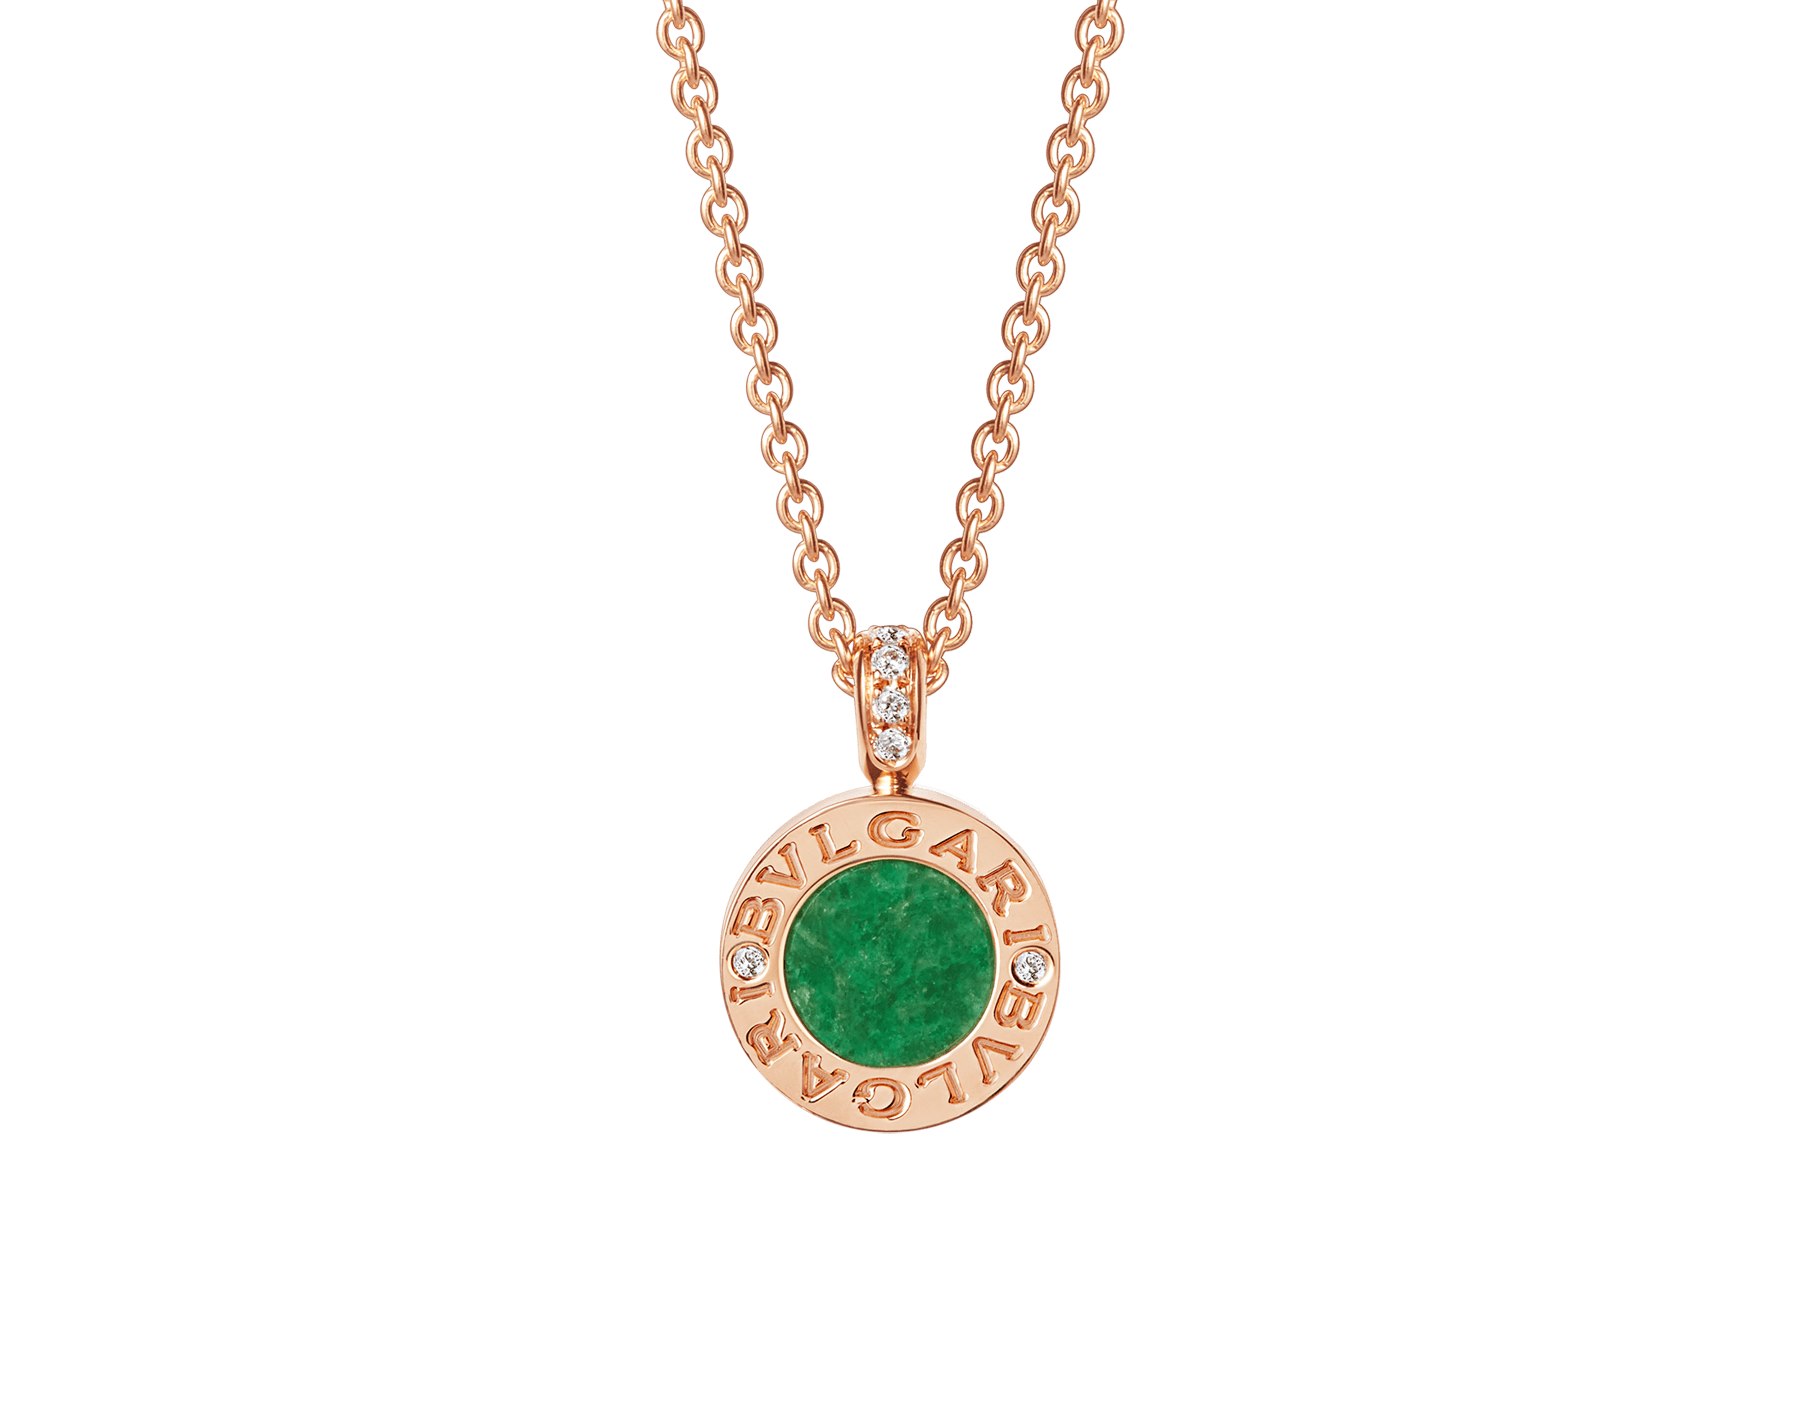 BVLGARI BVLGARI necklace with 18 kt rose gold chain and 18 rose gold pendant set with green jade and pavé diamonds 357256 image 1